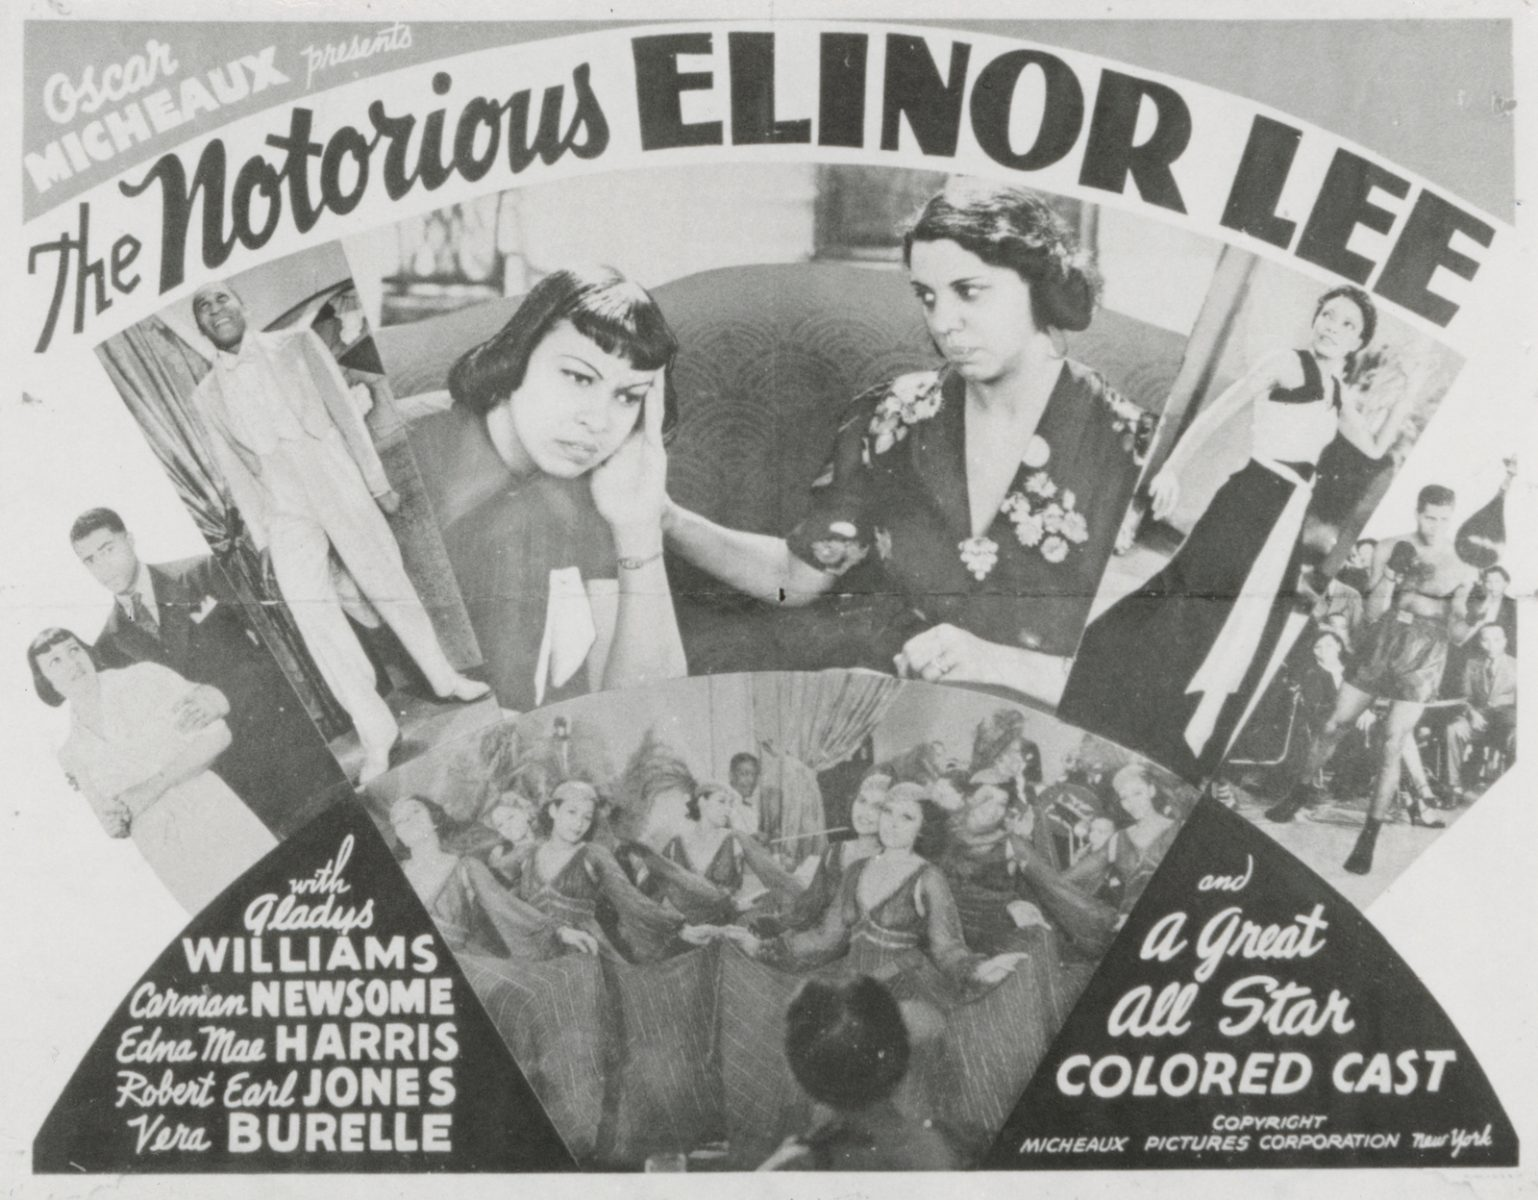 Promotional poster for the film, The Notorious Elinor Lee, by Oscar Micheaux.